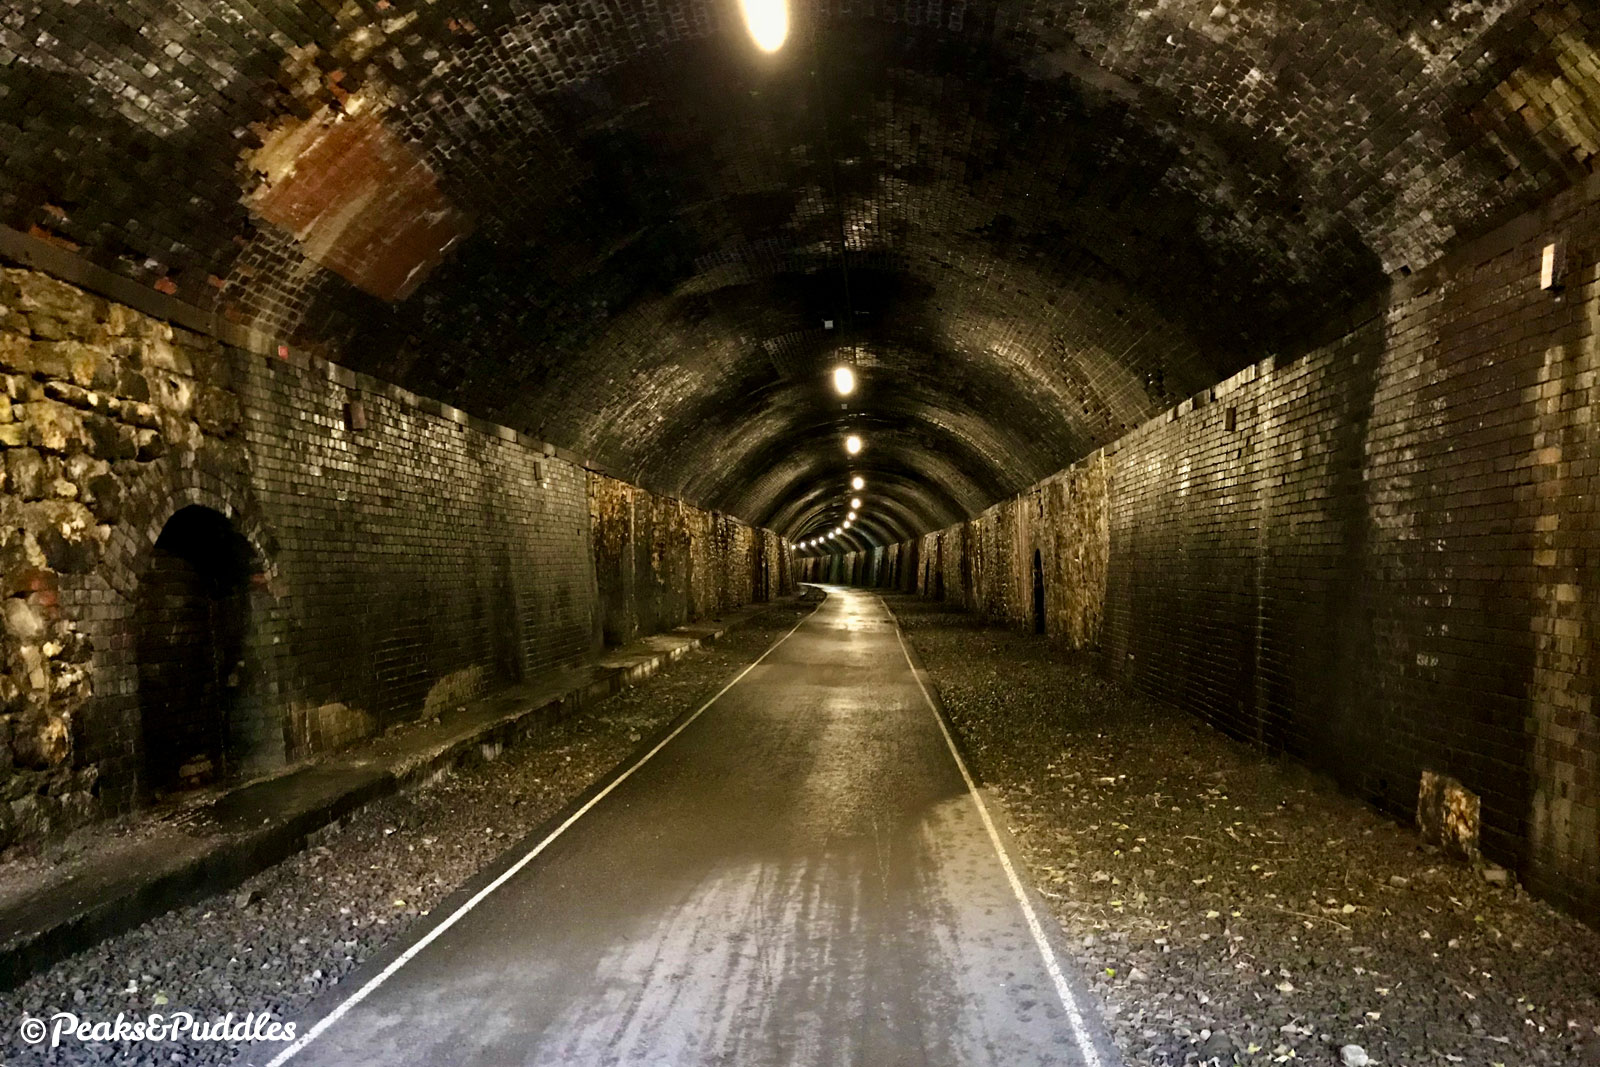 Cycling through the Monsal Trail tunnels is a truly unforgettable experience, one of the cycling highlights of Great Britain, let alone the Peak District.